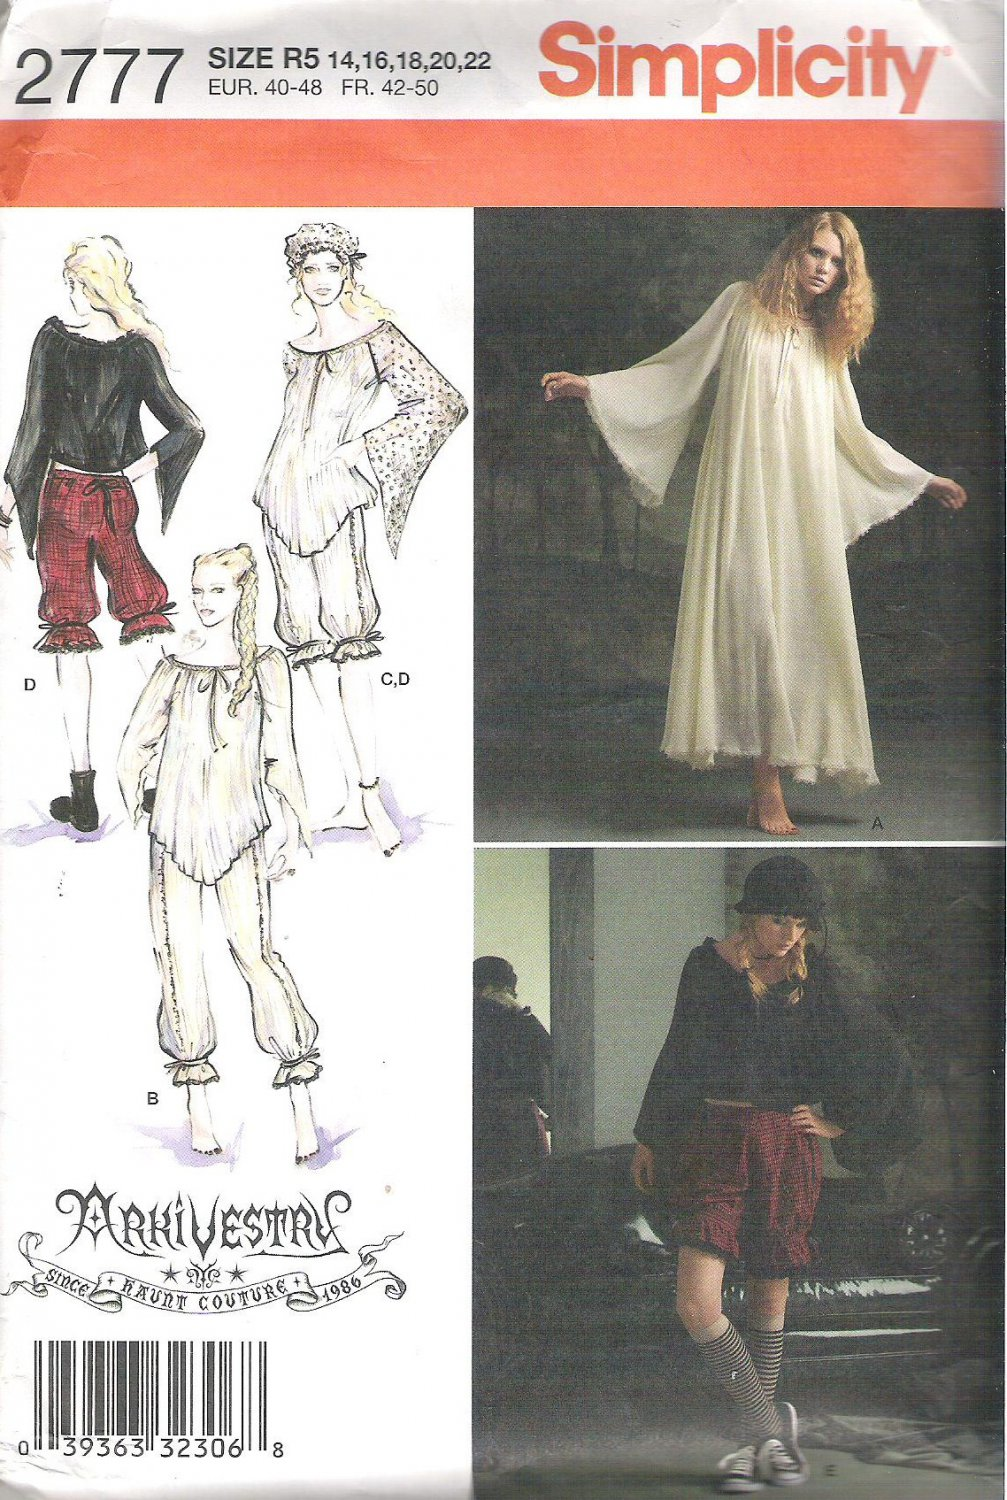 2008 Simplicity 2777 Pattern  Vintage Look Dress Top Bloomers Cap  Size 14-22  Top Cut to 22